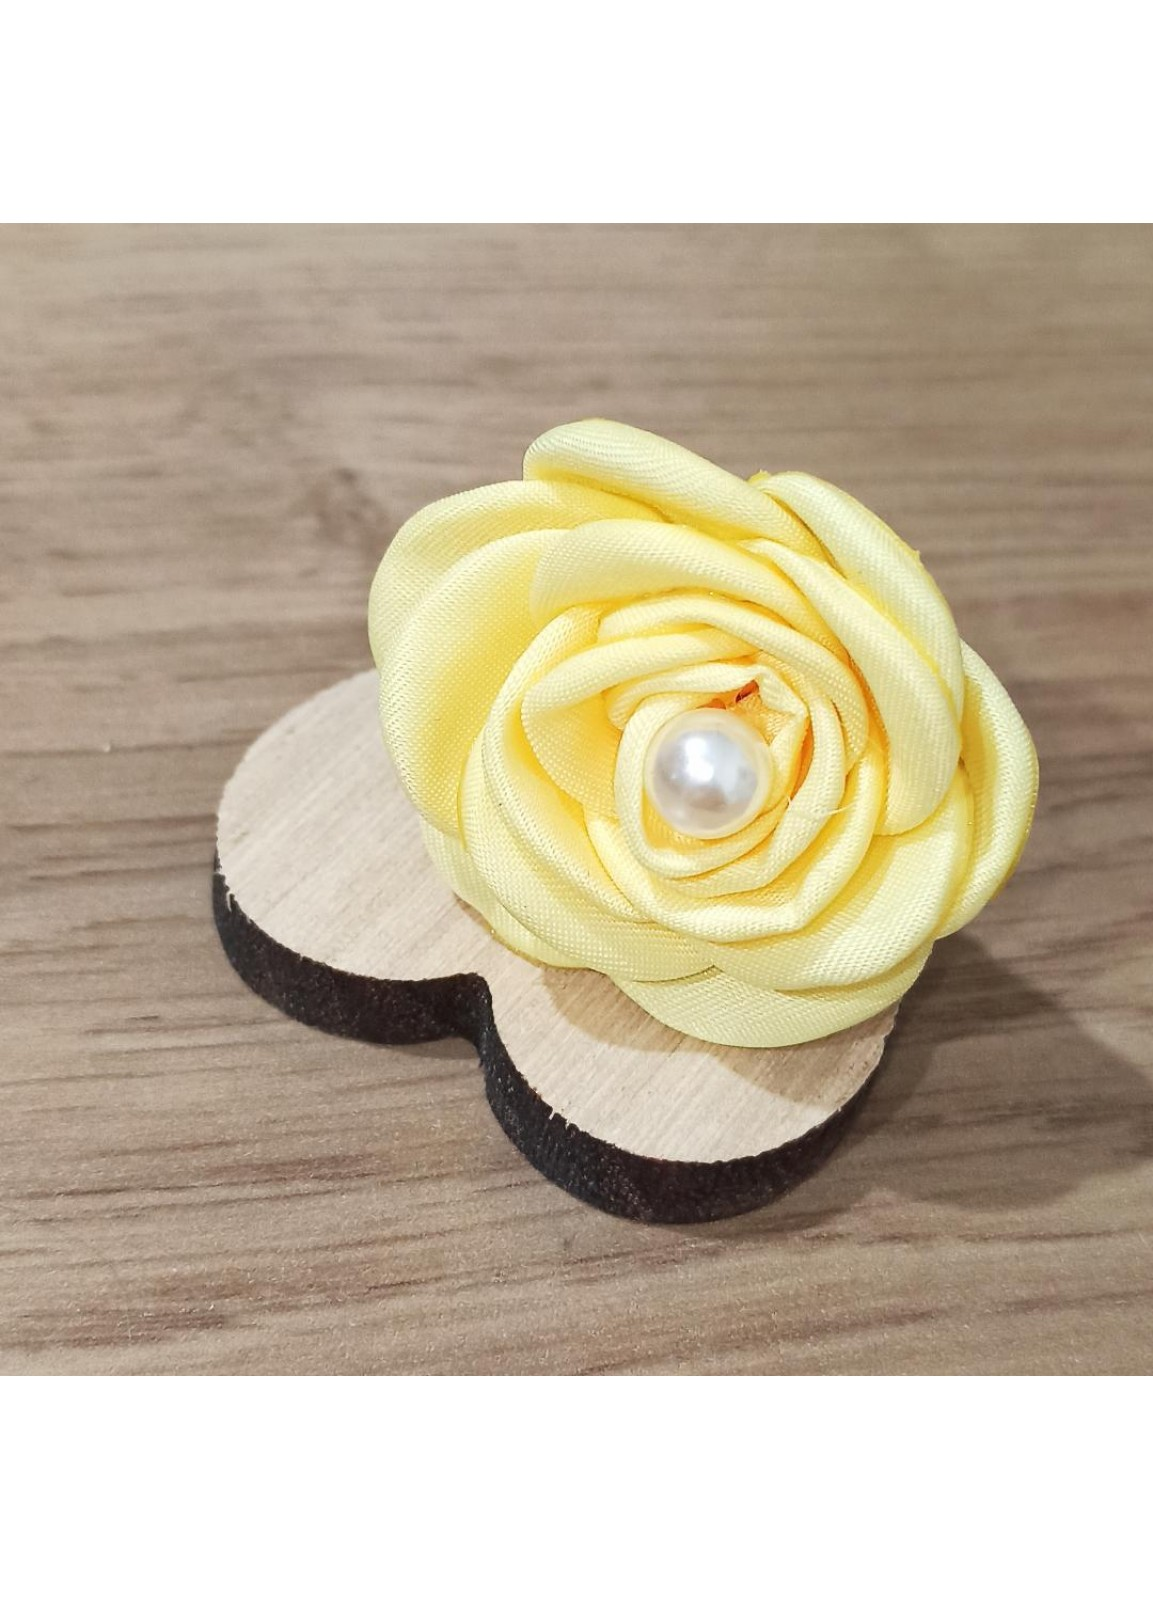 Ring Yellow Rose